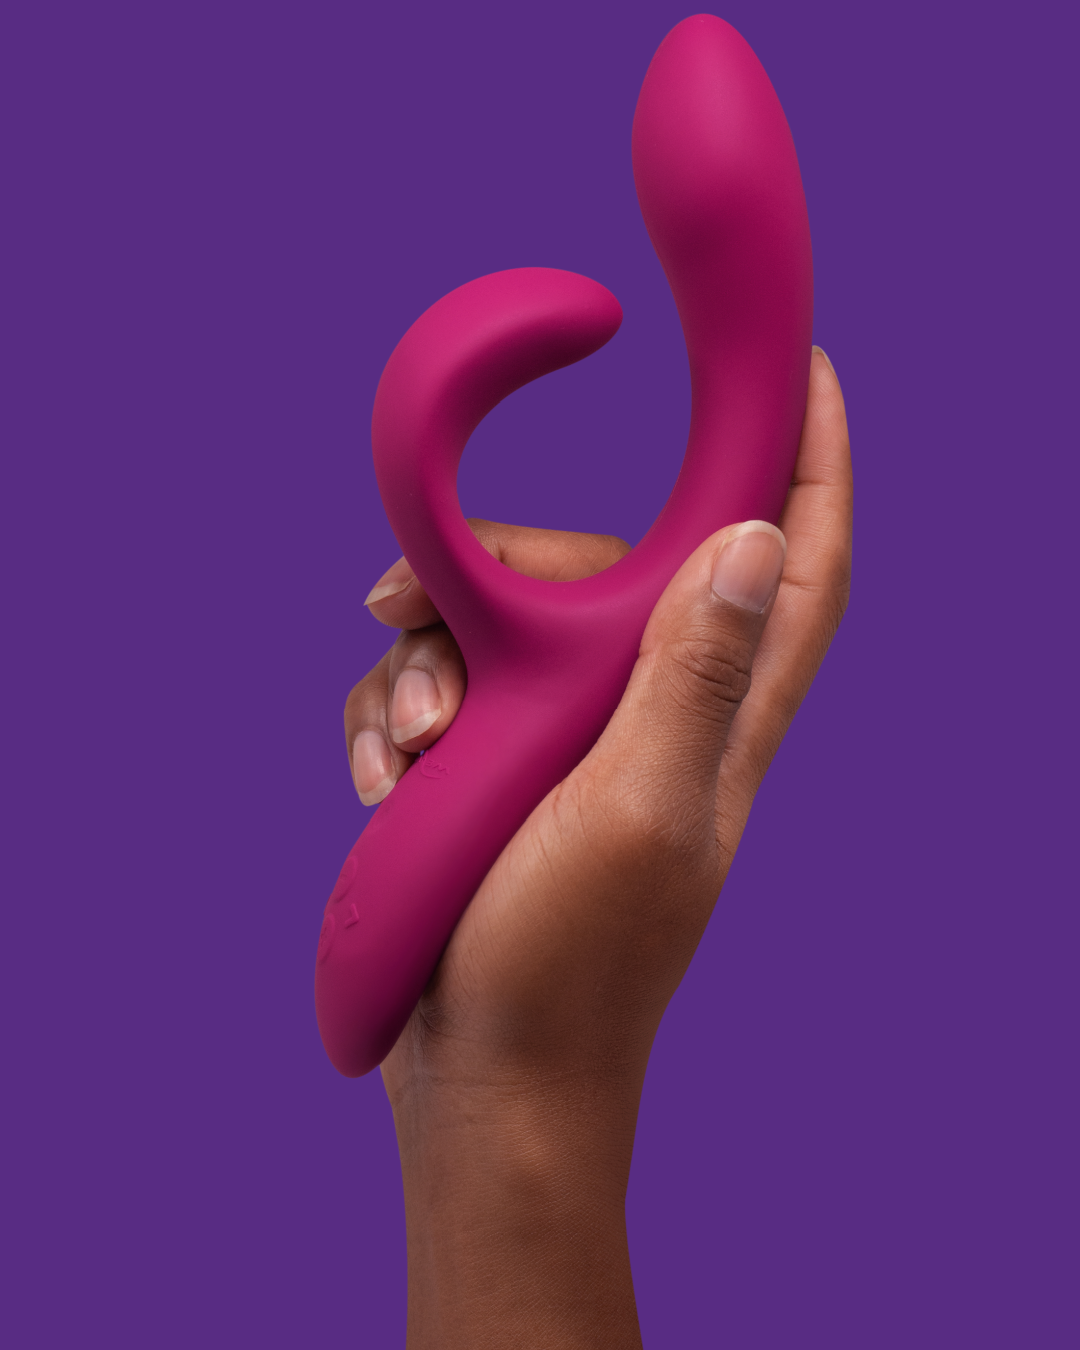 We-Vibe Nova 2 Rechargeable Dual Stimulator Vibrator on purple background in model's hand